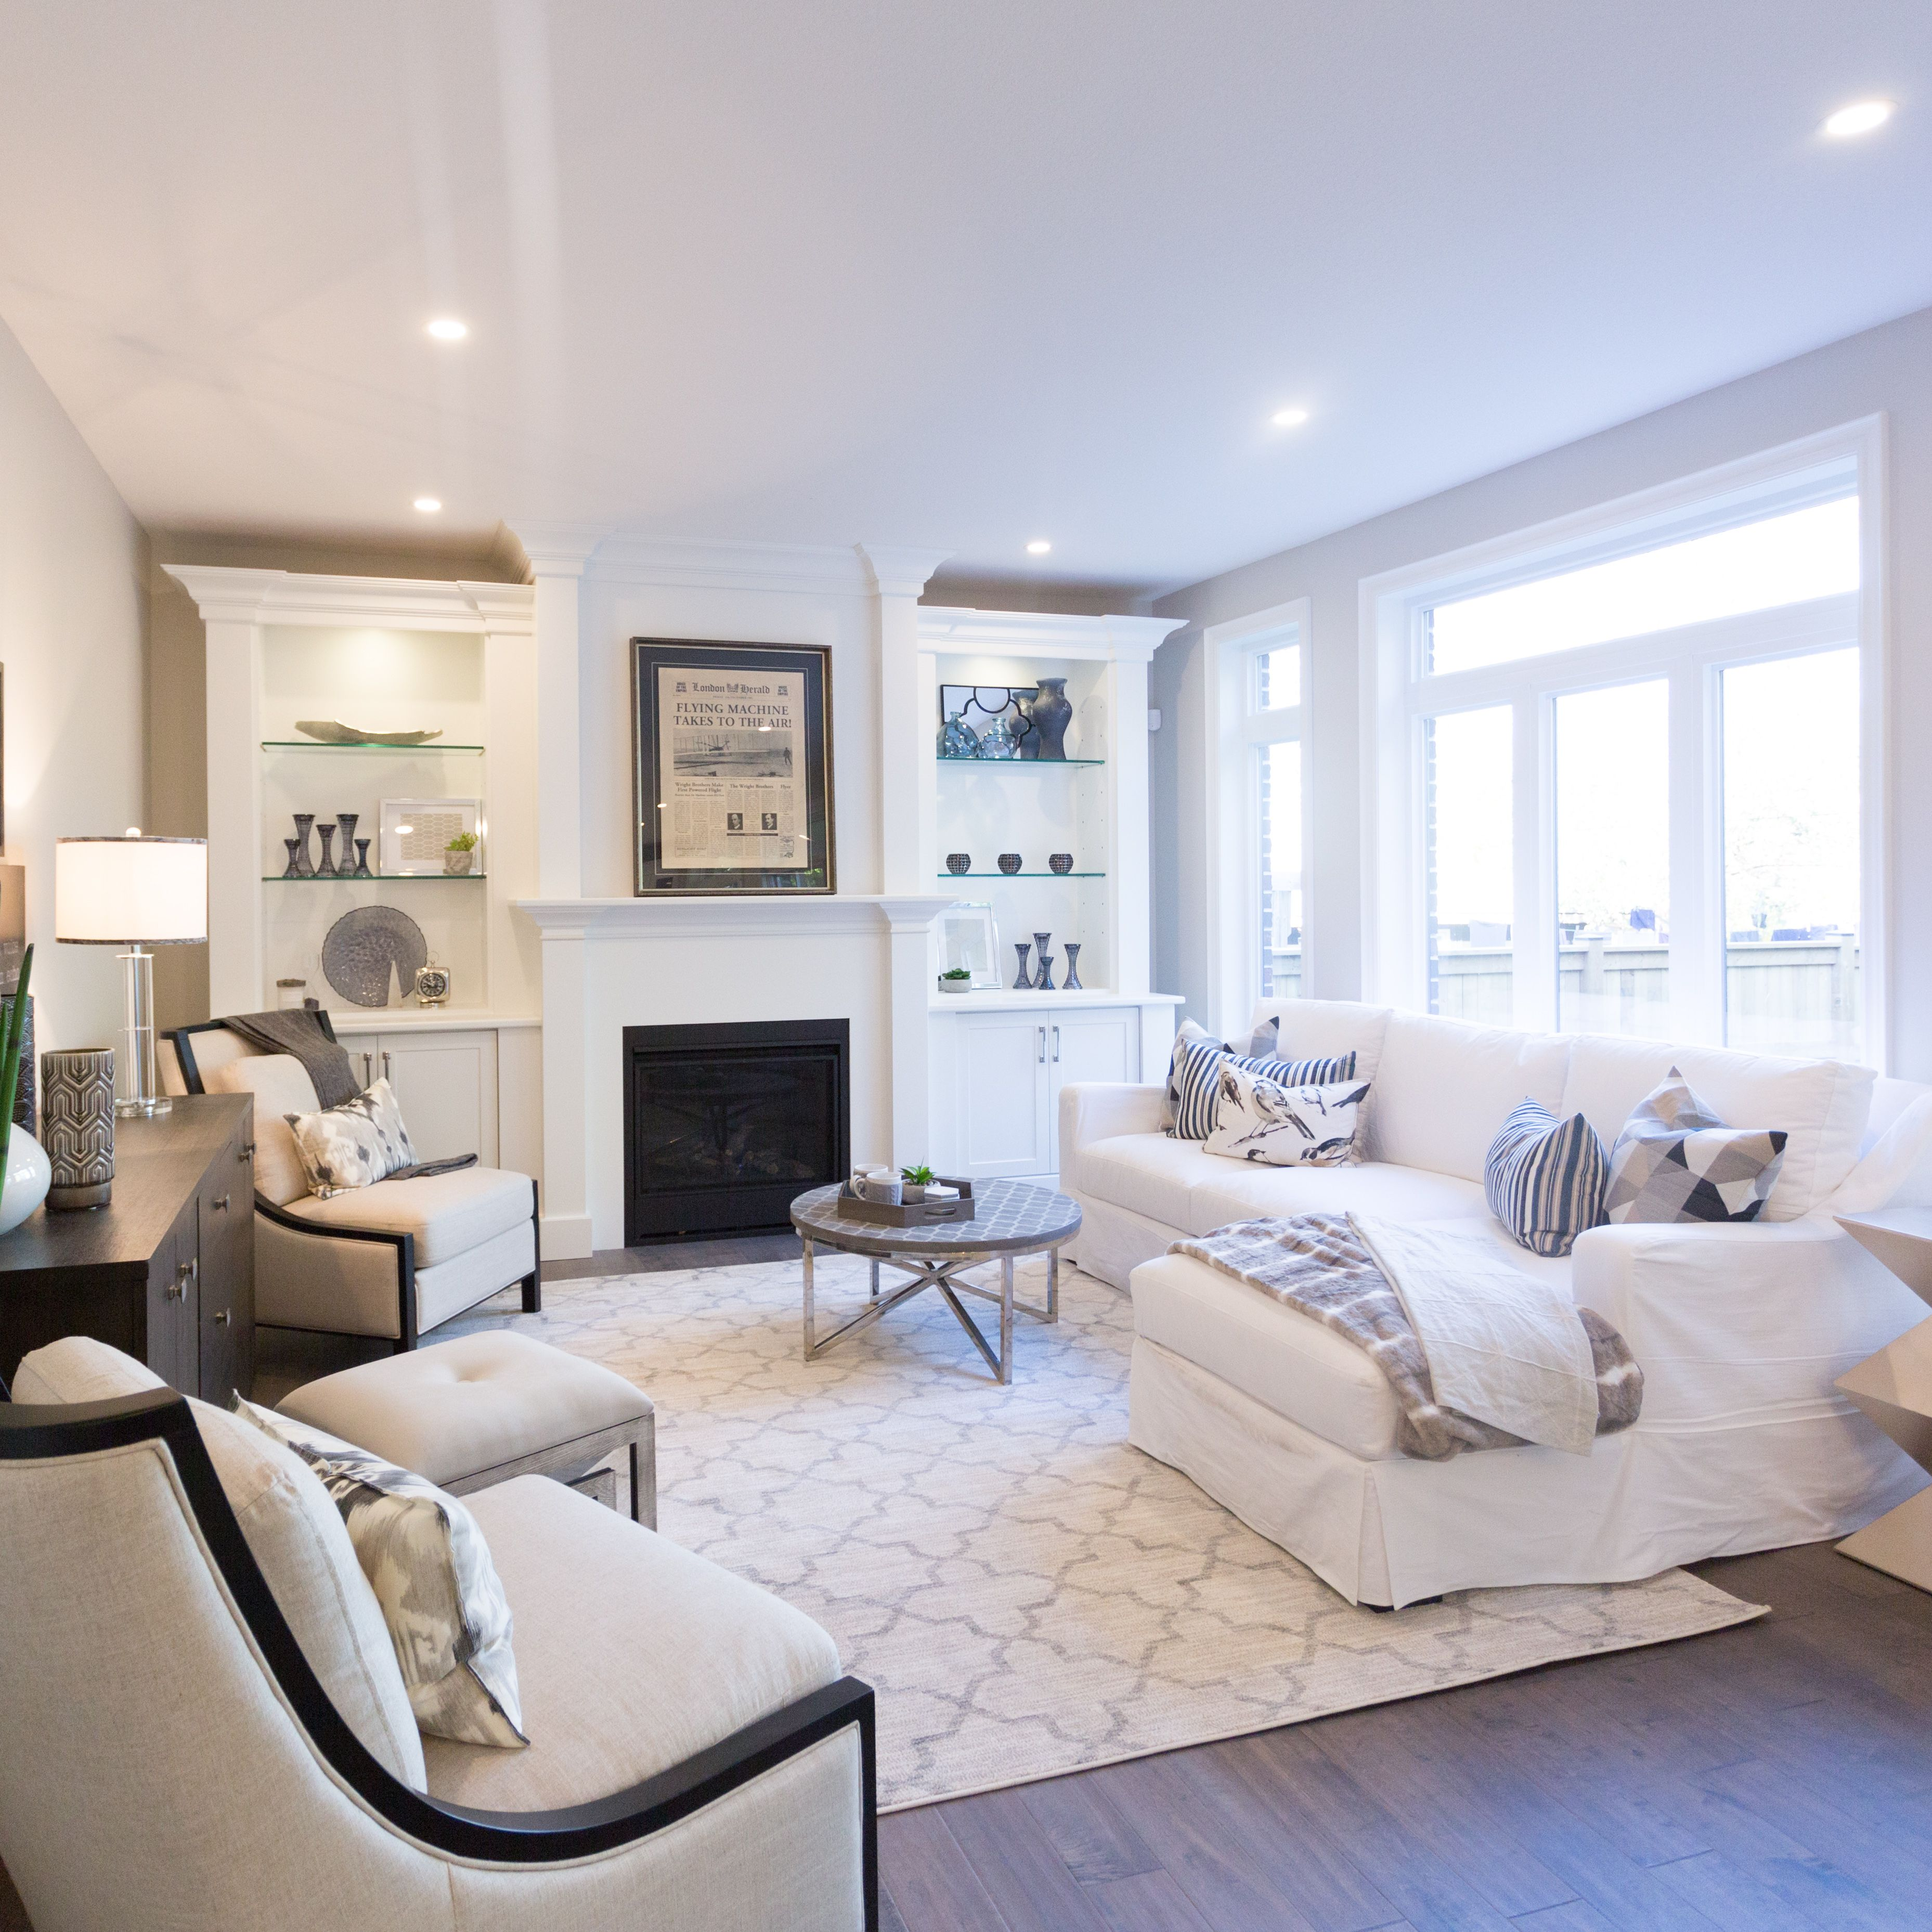 Staged Living Room c/o Plum Staging & Decor | Plum Staging & Decor ...